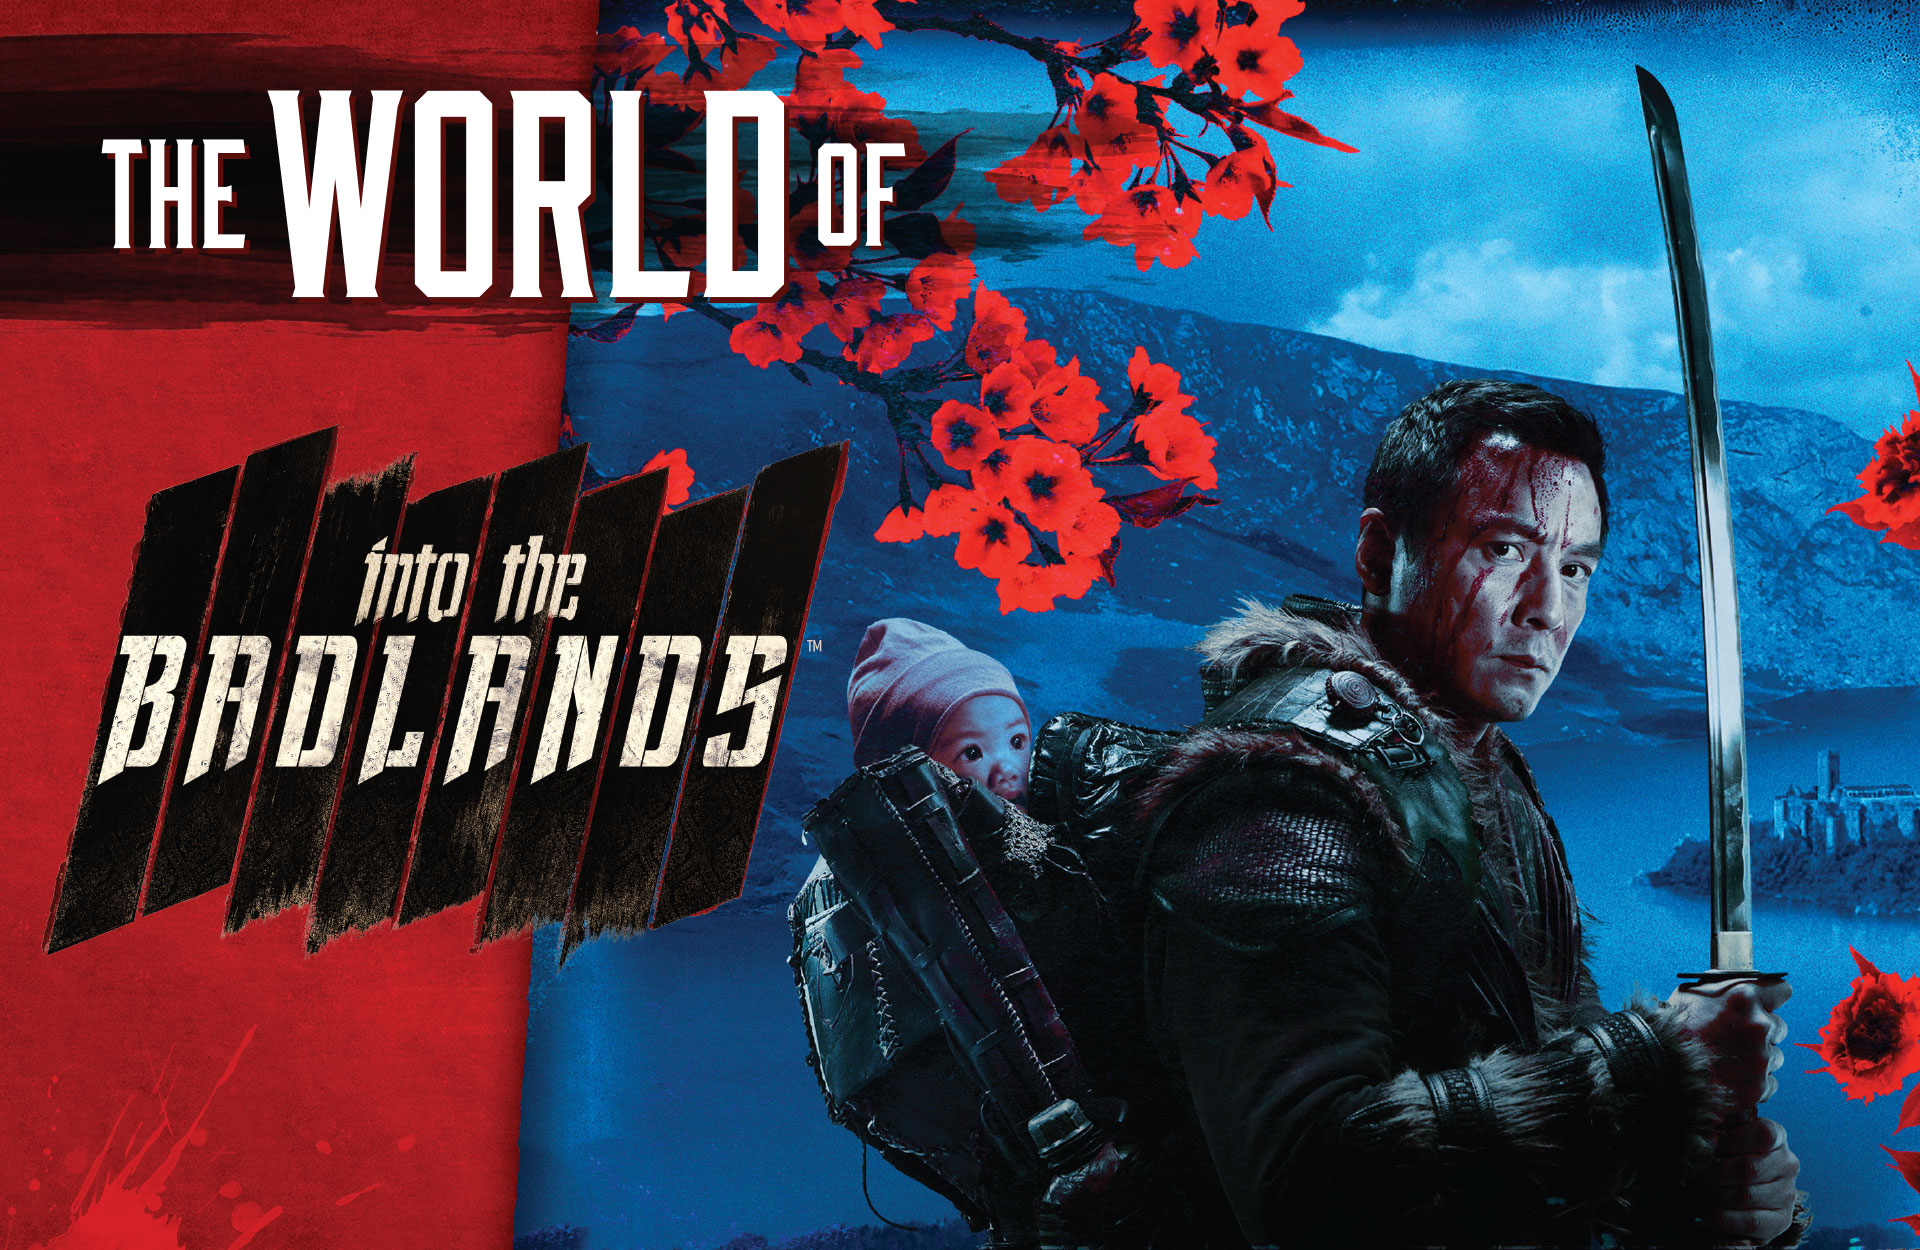 Into the Badlands - The World - AMC